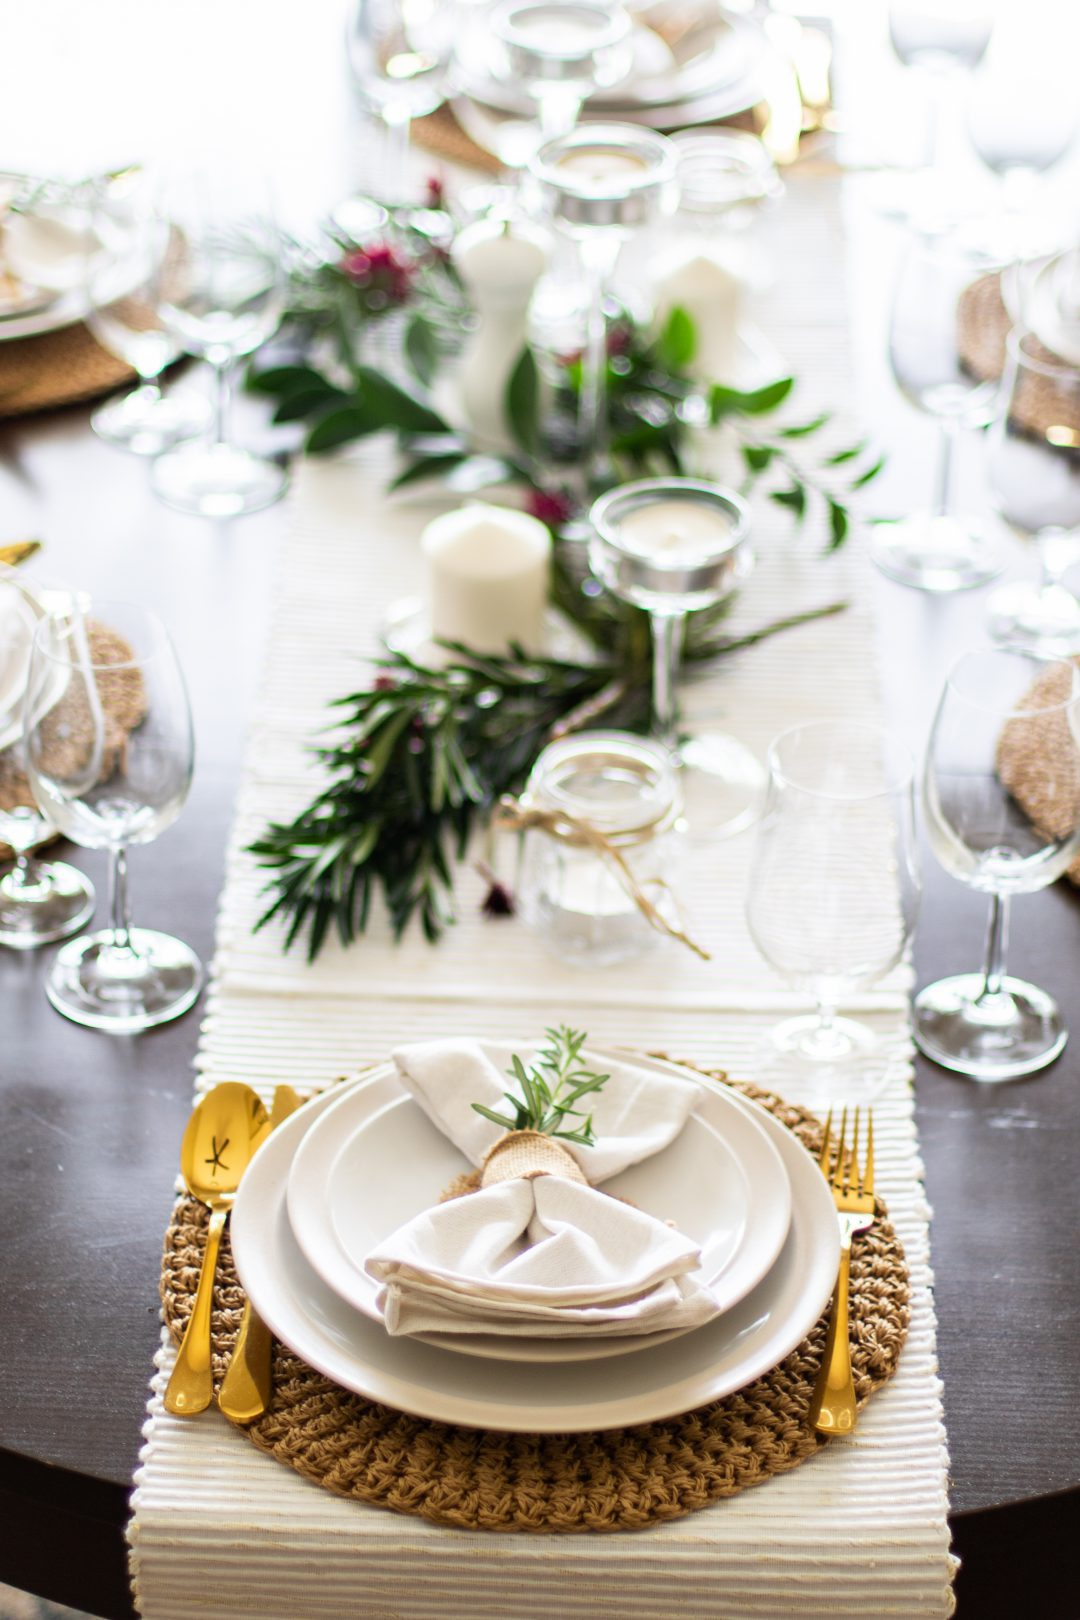 Table setting with glass and gold silverware.